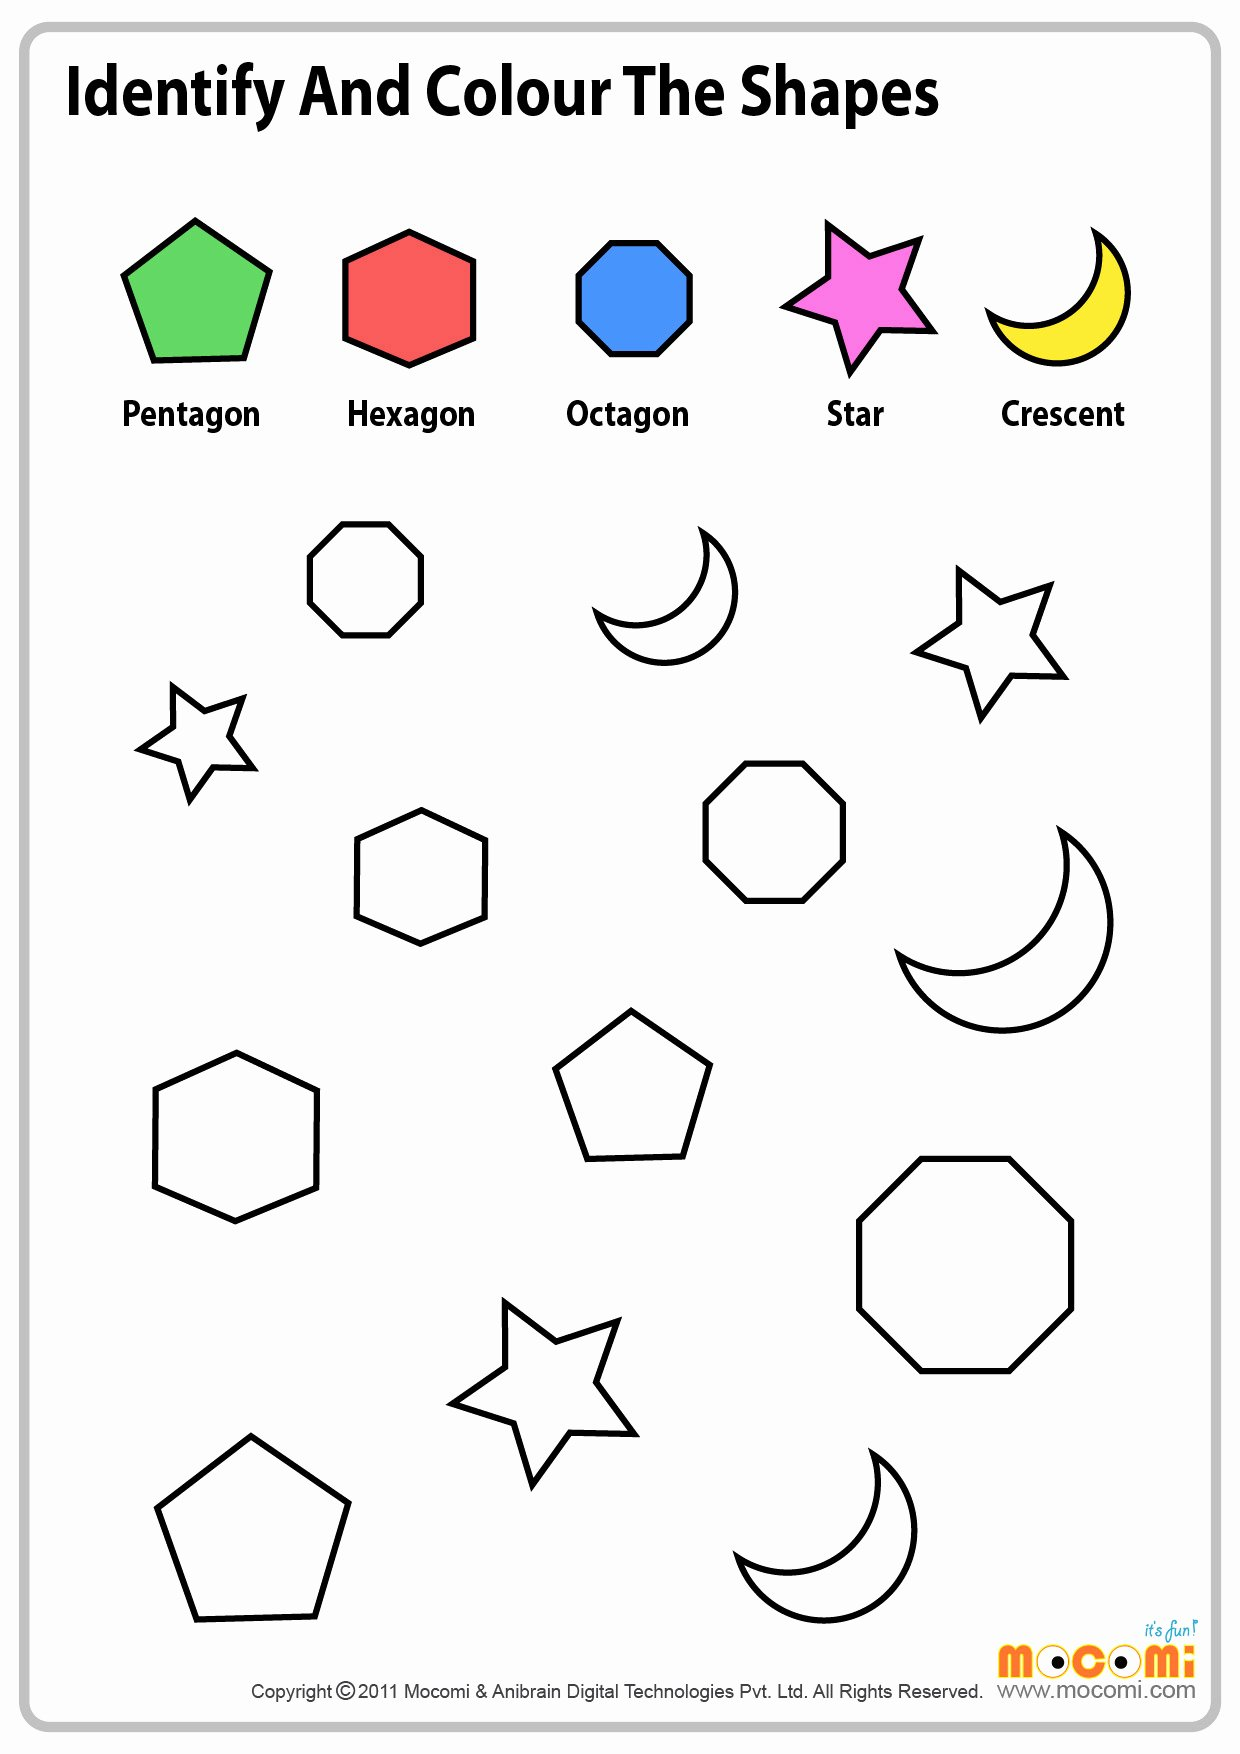 Crescent Shape Worksheets for Preschoolers Beautiful Colour Similar Shapes Maths Worksheet for Kids Mo I